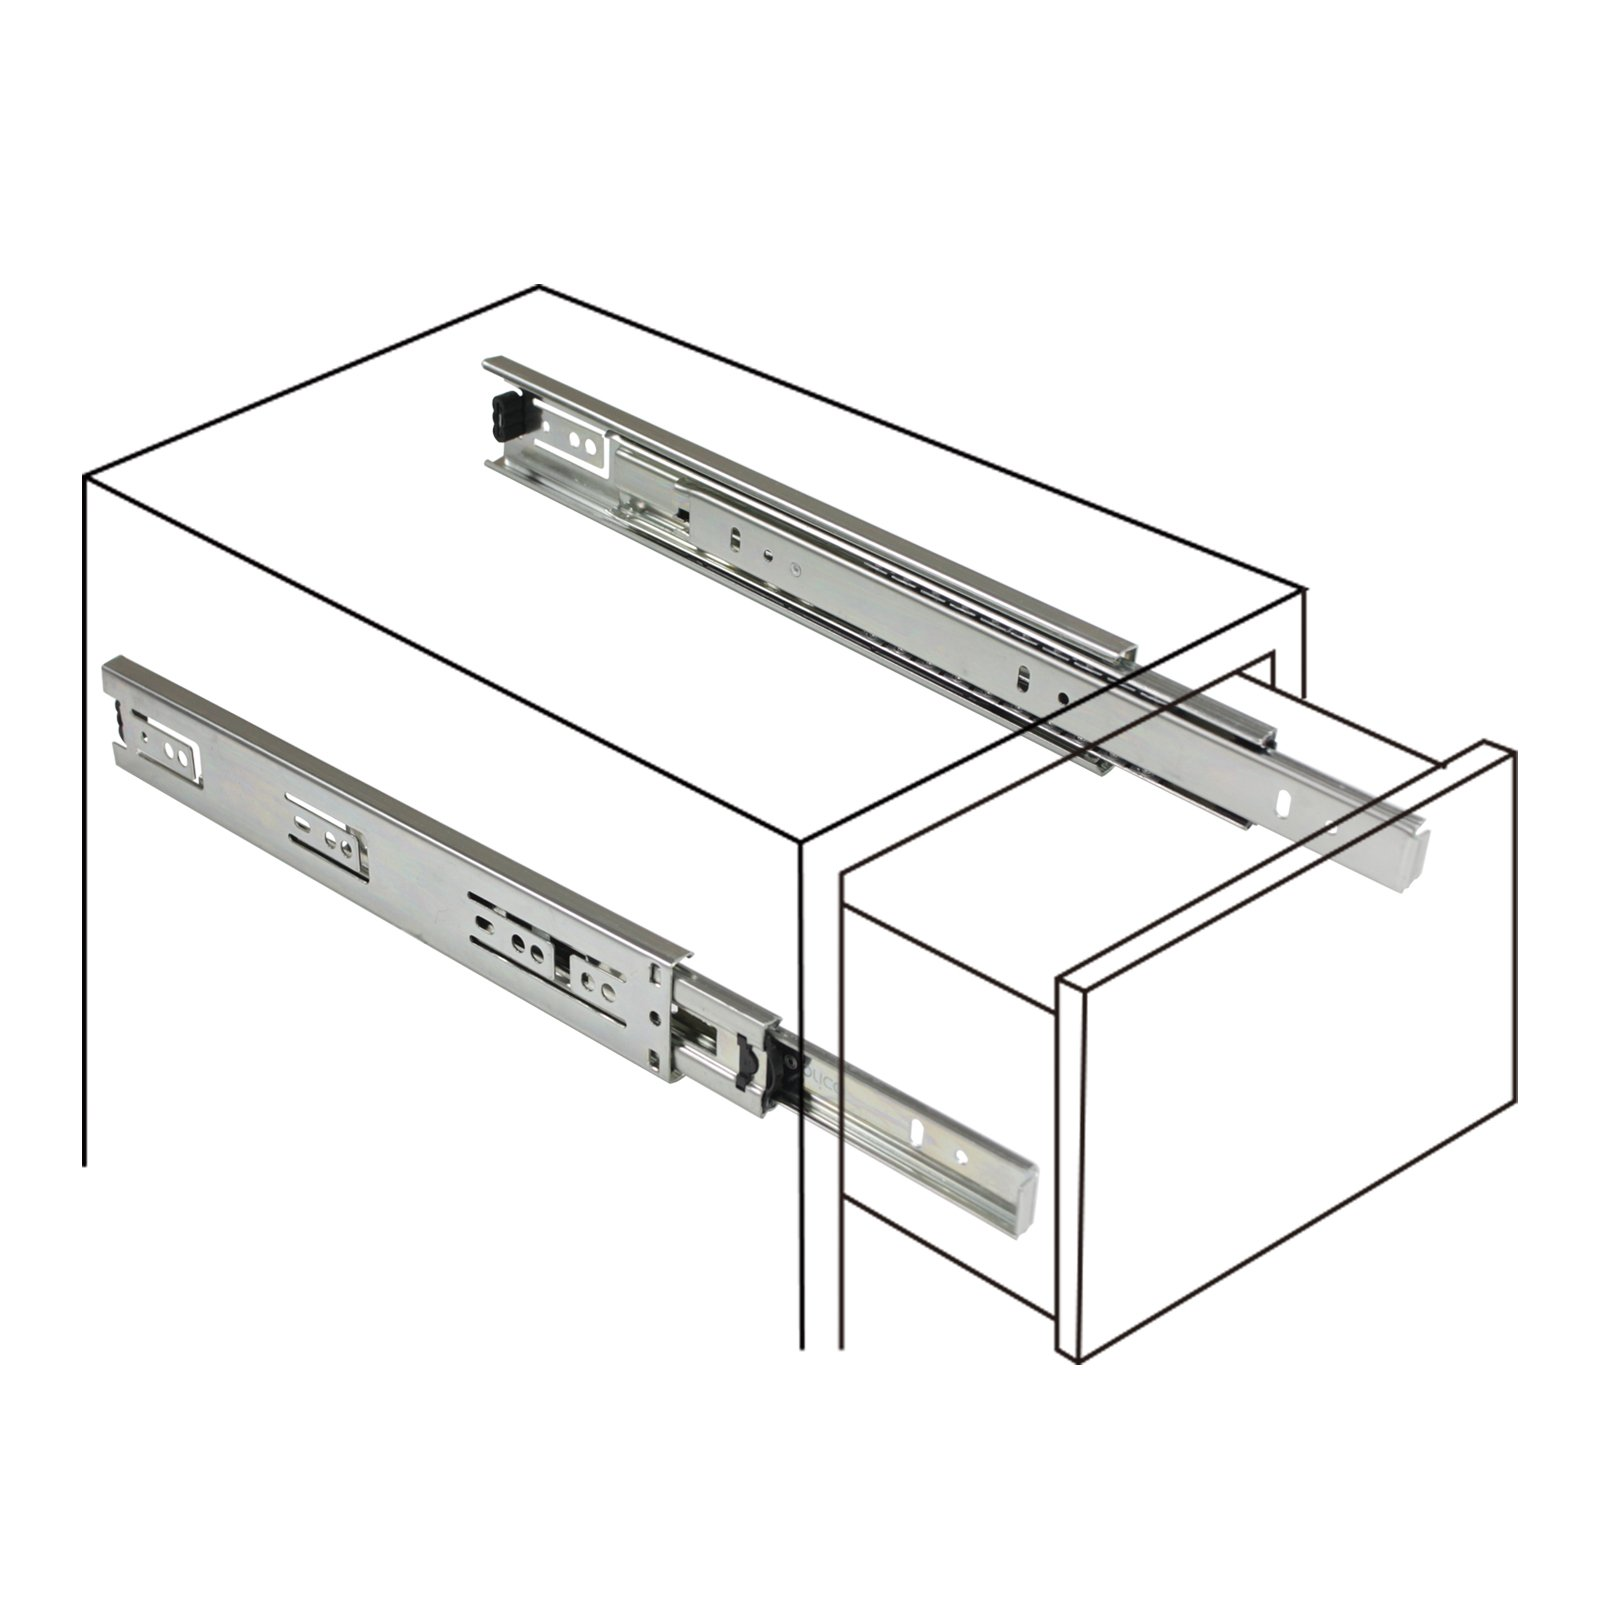 2 Pairs 22 inch Full Extension Side Mount Drawer Slides 3-Folds Ball Bearing Heavy Duty 100 lb Thickness:1.01.01.2mm by Probrico (Image #2)